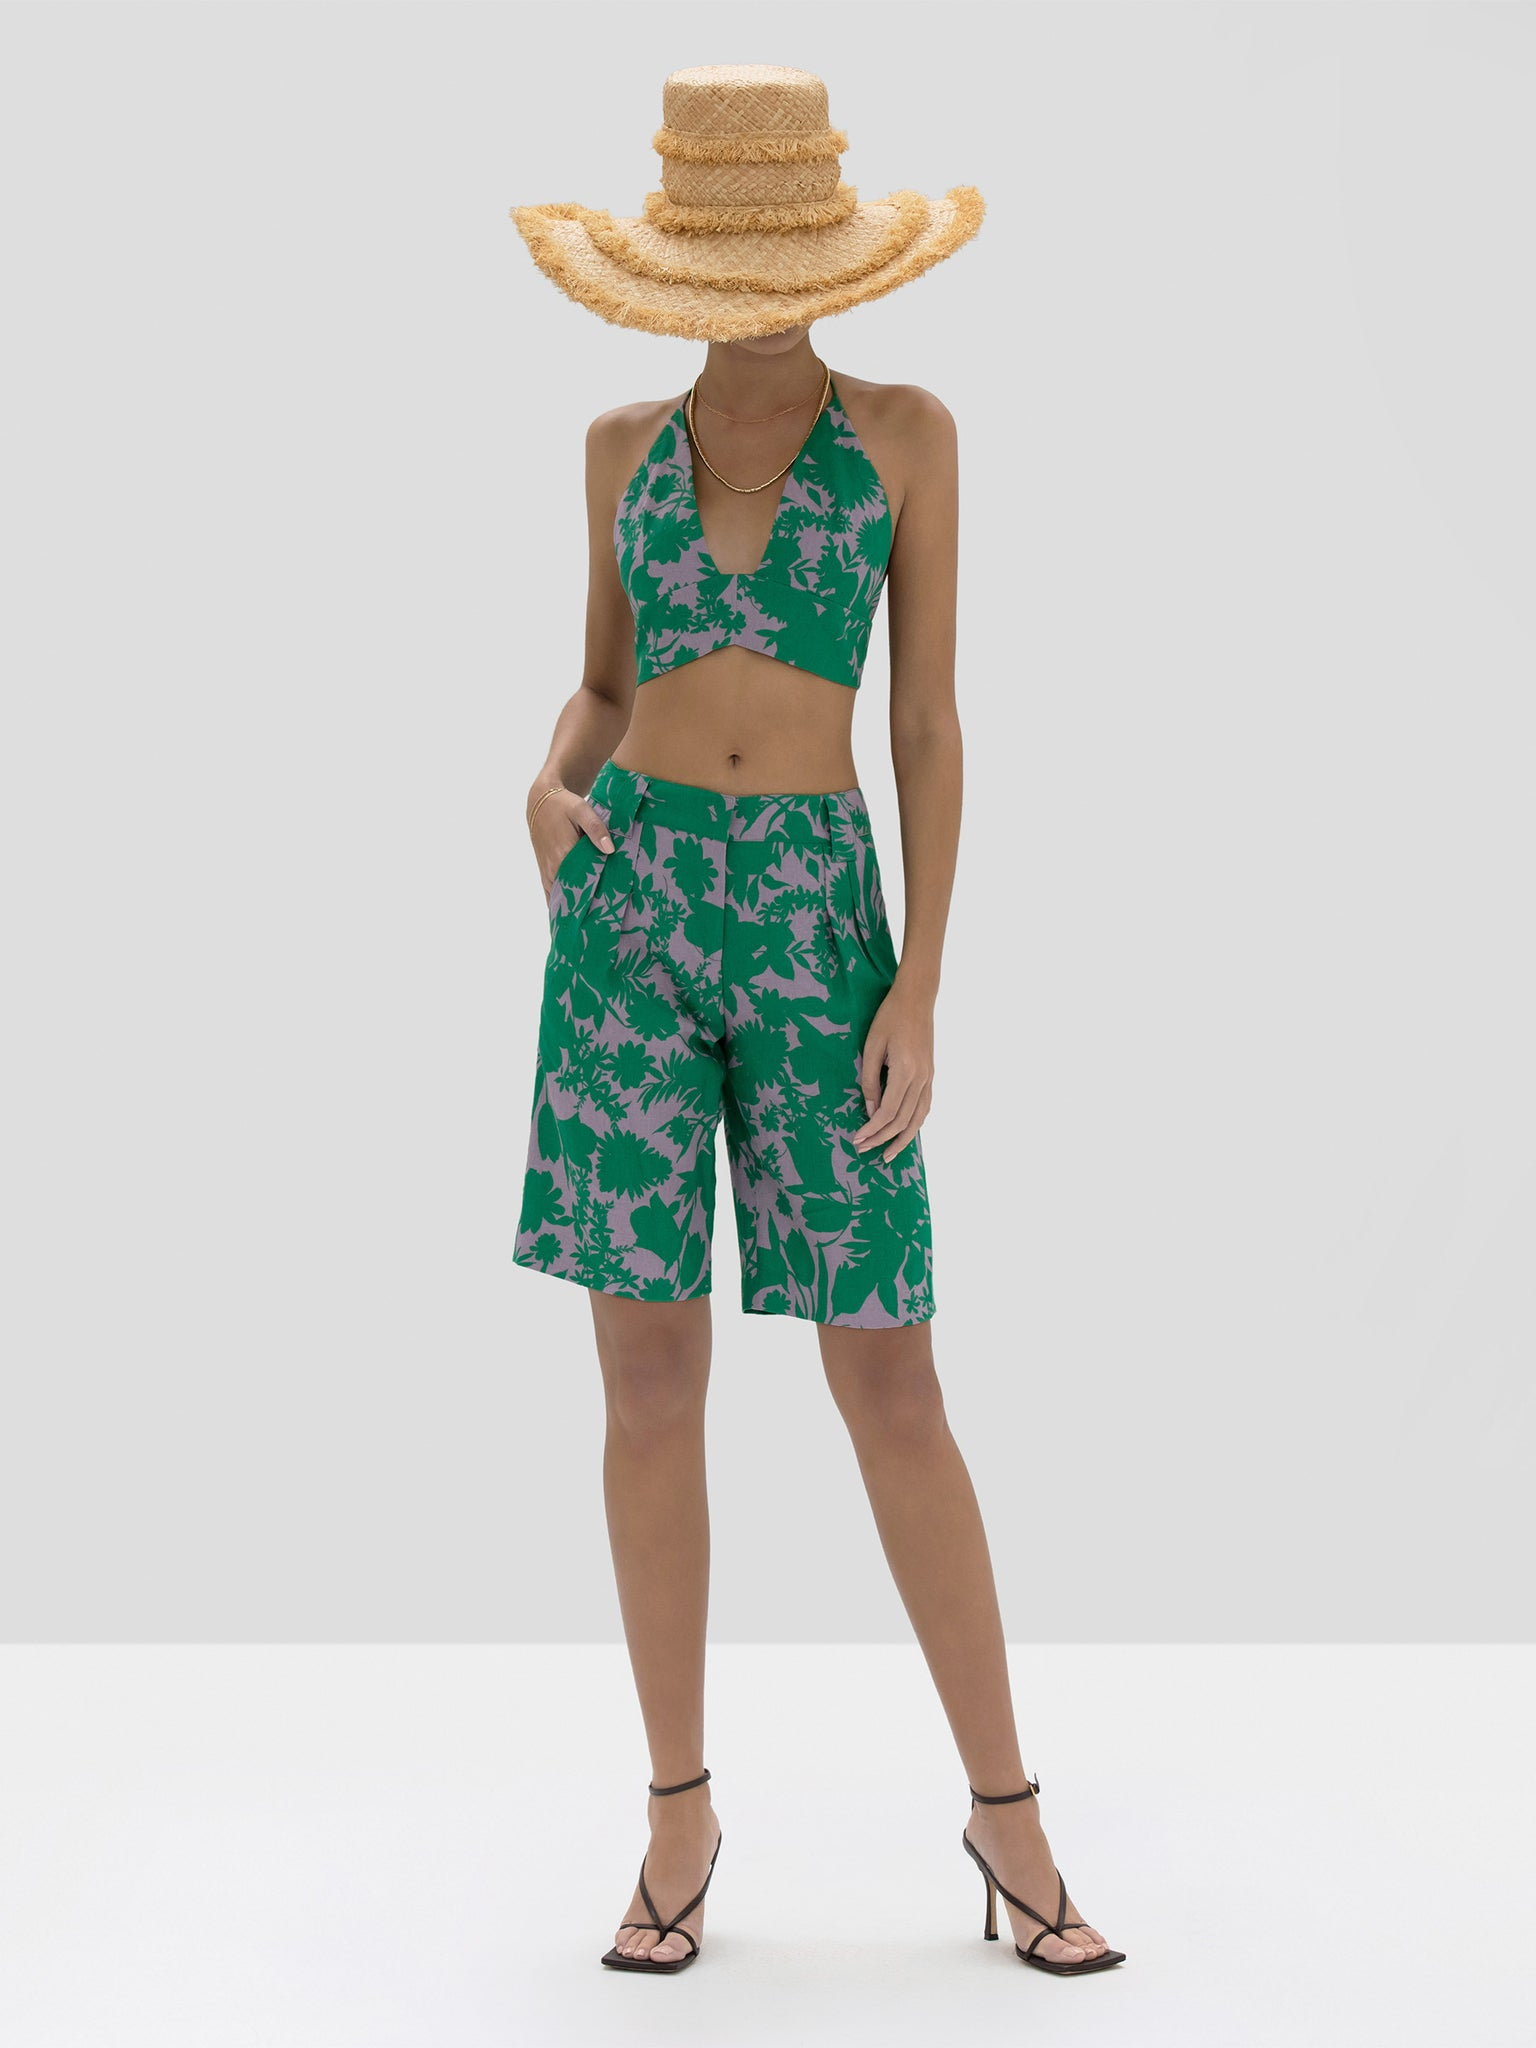 The Talbot Short in Emerald Botanical from the Spring Summer 2020 Ready To Wear Collection.